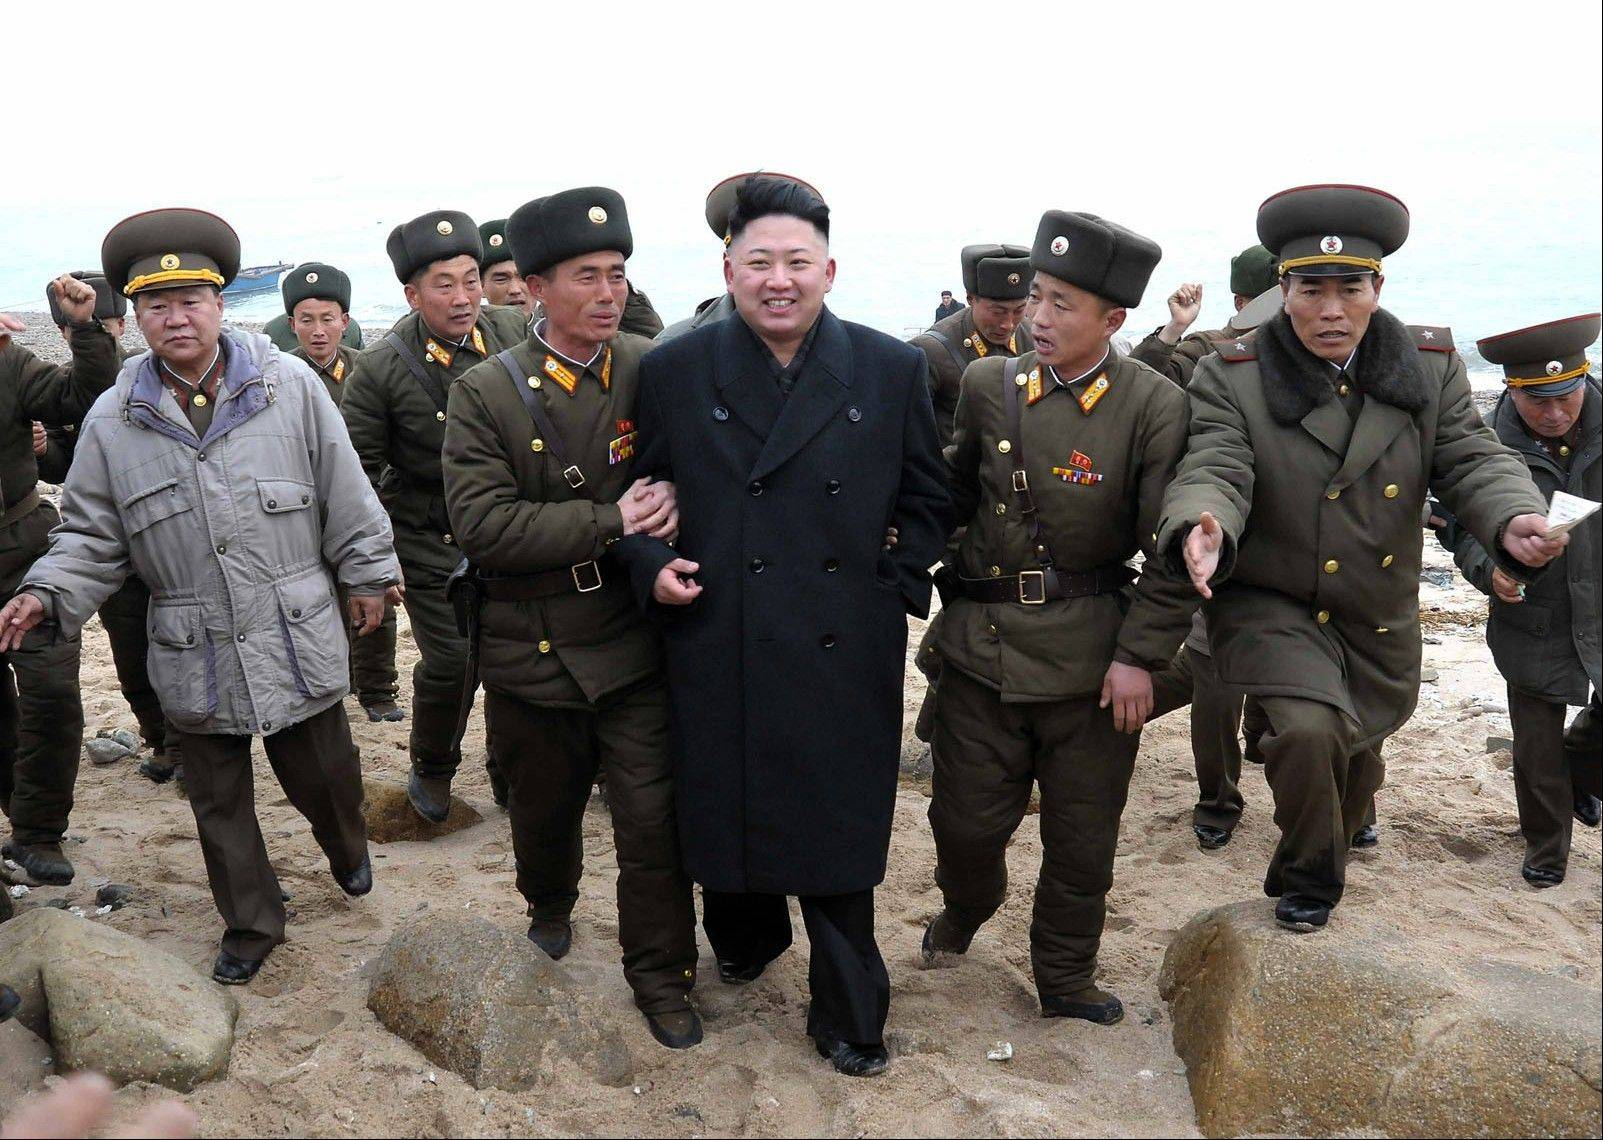 North Korean leader Kim Jong Un, center, walks with military personnel as he arrives for a military unit on Mu Islet, located in the southernmost part of the southwestern sector of North Korea's border with South Korea.